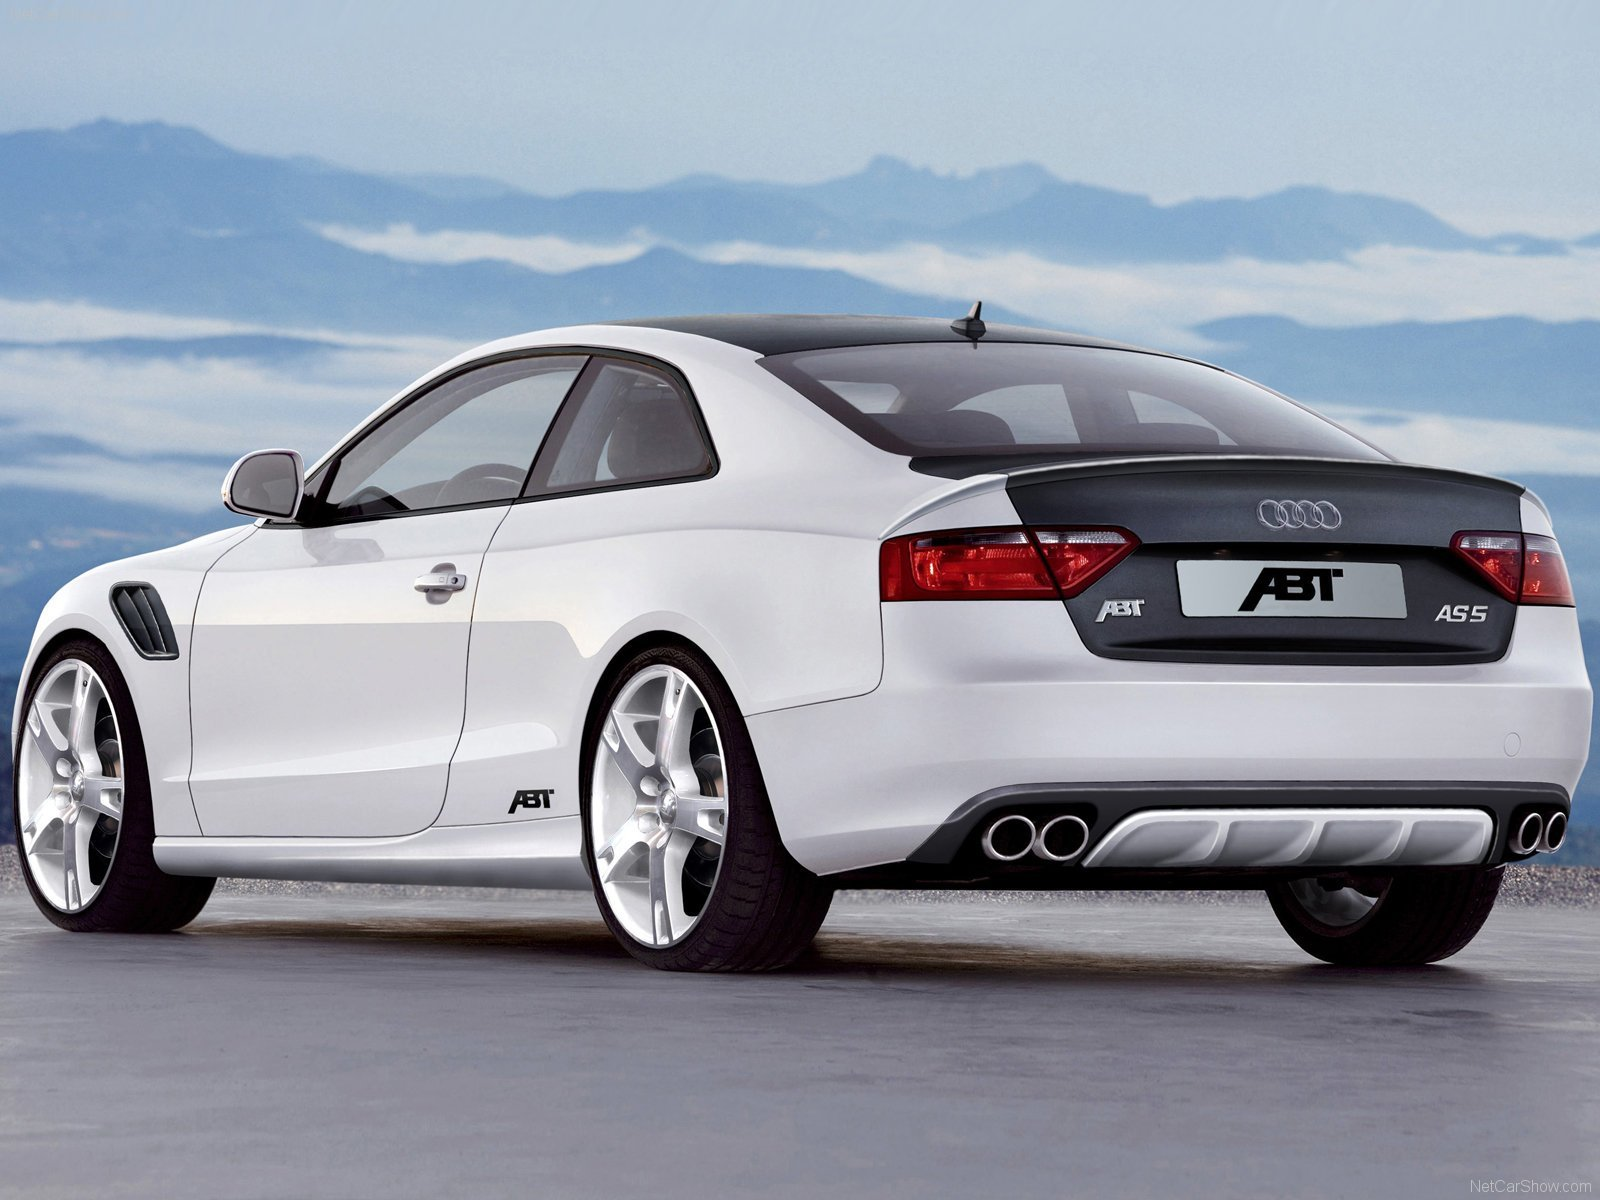 Latest Abt Audi As5 Photos Photogallery With 4 Pics Carsbase Com Free Download